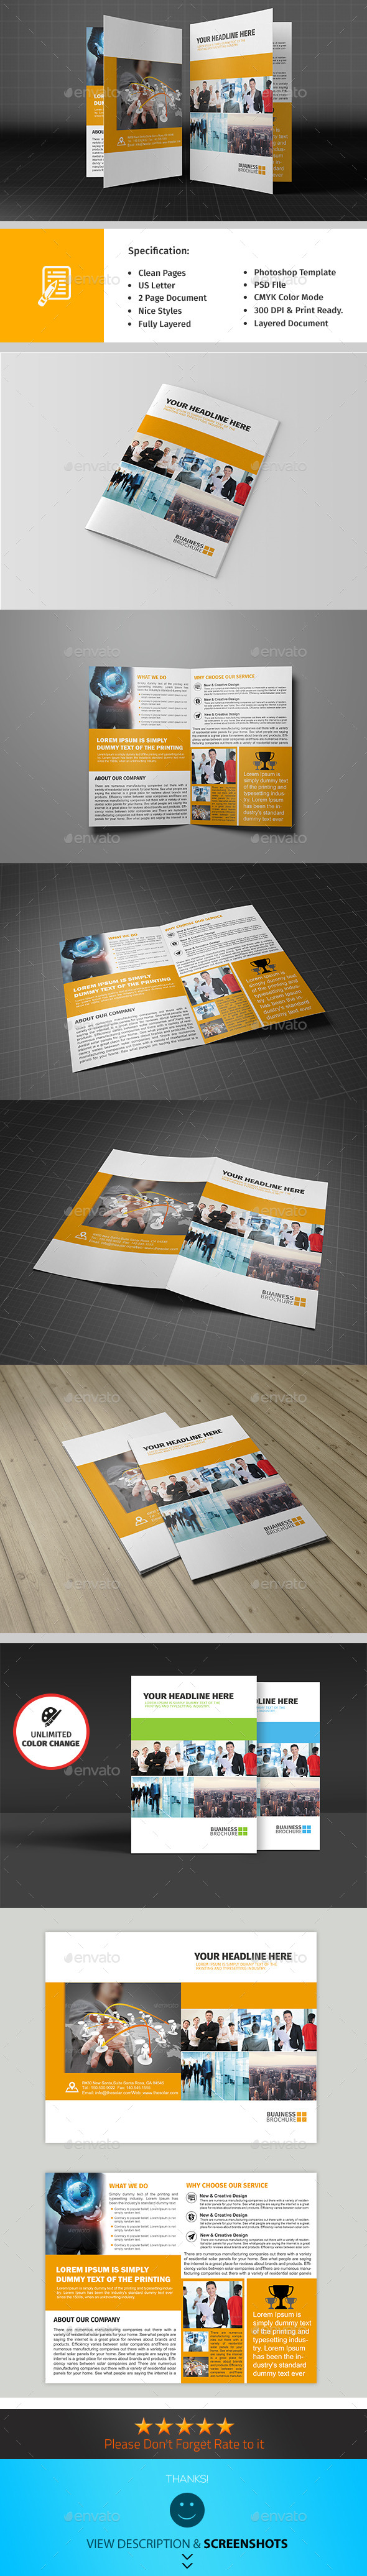 GraphicRiver Bifold Corporate Brochure Template Vol04 9738937